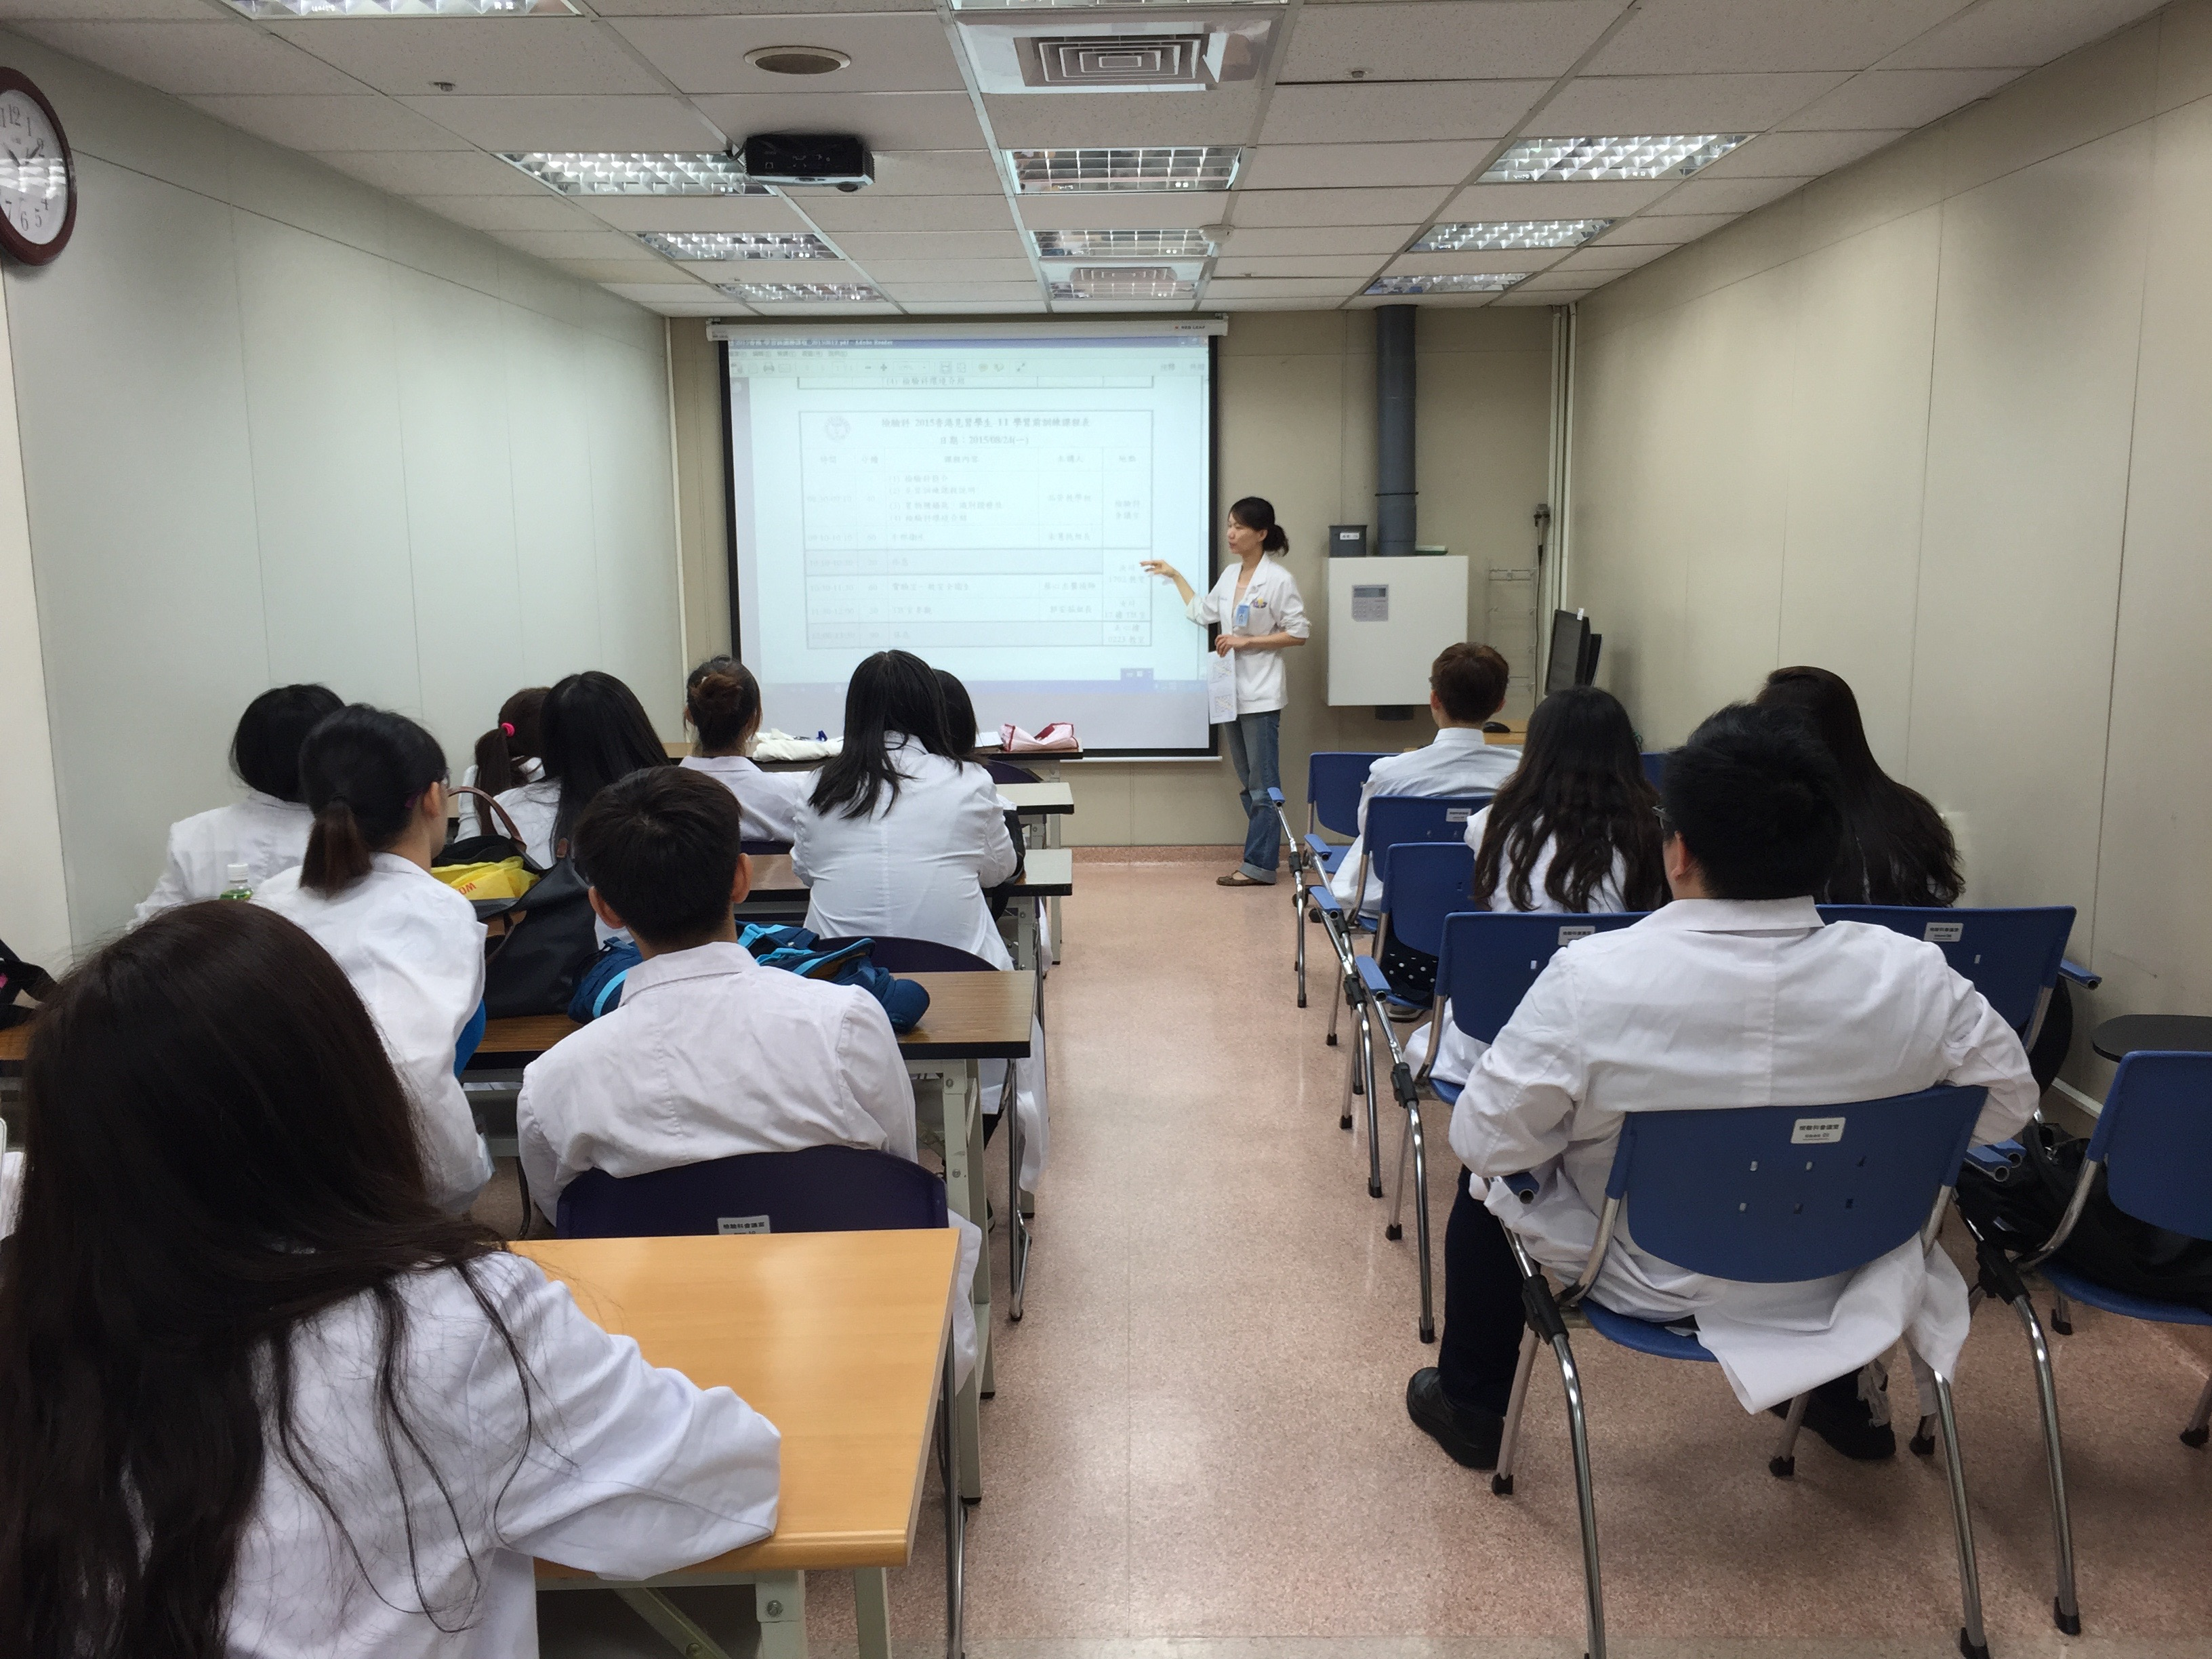 2015 Overseas Learning Experience in Chung Shan Medical University Hospital (Taiwan) for the Higher Diploma in Medical and Health Product Management Programme - Photo - 1